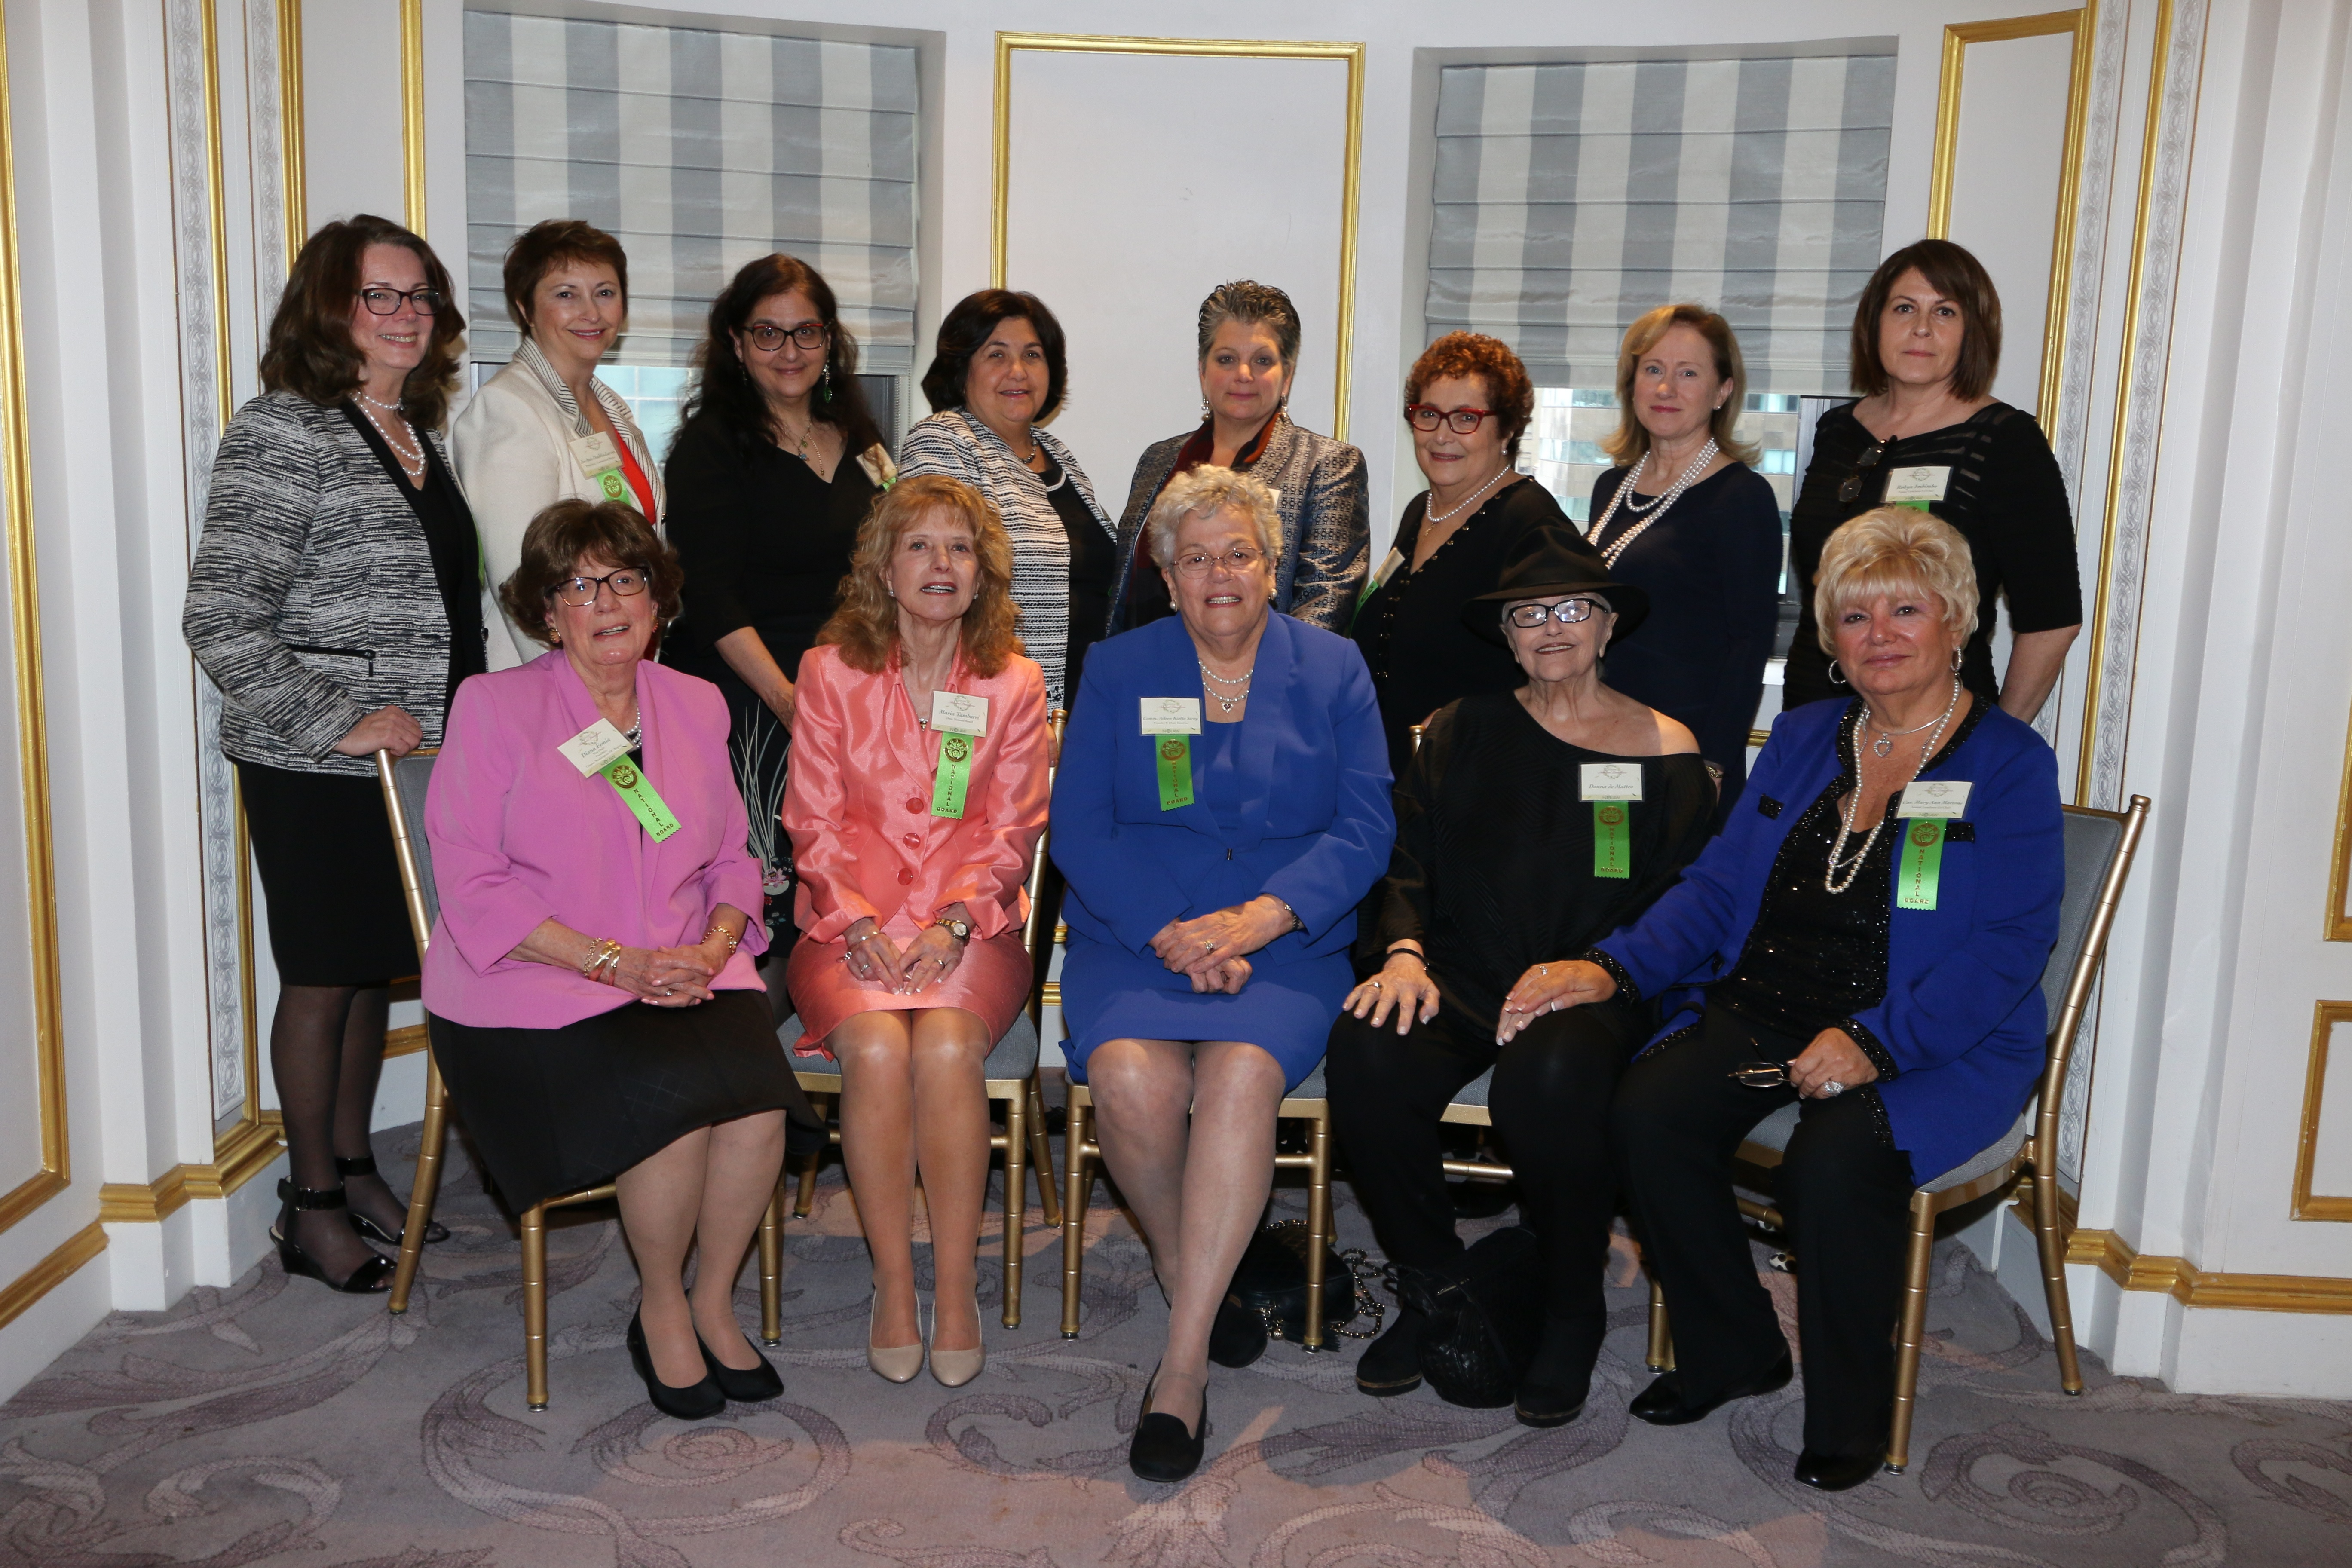 NOIAW National Board Members from left back row: Greater New York Regional Director MaryRose Barranco Morris, Ed.D.; Connecticut Regional Director Jo-Ann Daddio-Larsen; Donna M. Chirico, Ed.D.; Betty Santangelo, Esq.; Donna Corrado, Ph.D., LCSW; Hon. Angela Mazzarelli; Rhode Island Regional Director Anne Marie D'Attelo; Co-Chair of Annual Luncheon and Treasurer Robyn Imbimbo; seated from left: Vice Chair and Washington, DC Regional Director Diana Femia; National Chair Maria Tamburri; Founder & Chair Emerita Aileen Riotto Sirey, Ph.D.; Donna de Matteo and Co-Chair of Annual Luncheon and Secretary Cav. Mary Ann Mattone, RN/MPH. Not pictured: Maria T. Vullo, Esq.